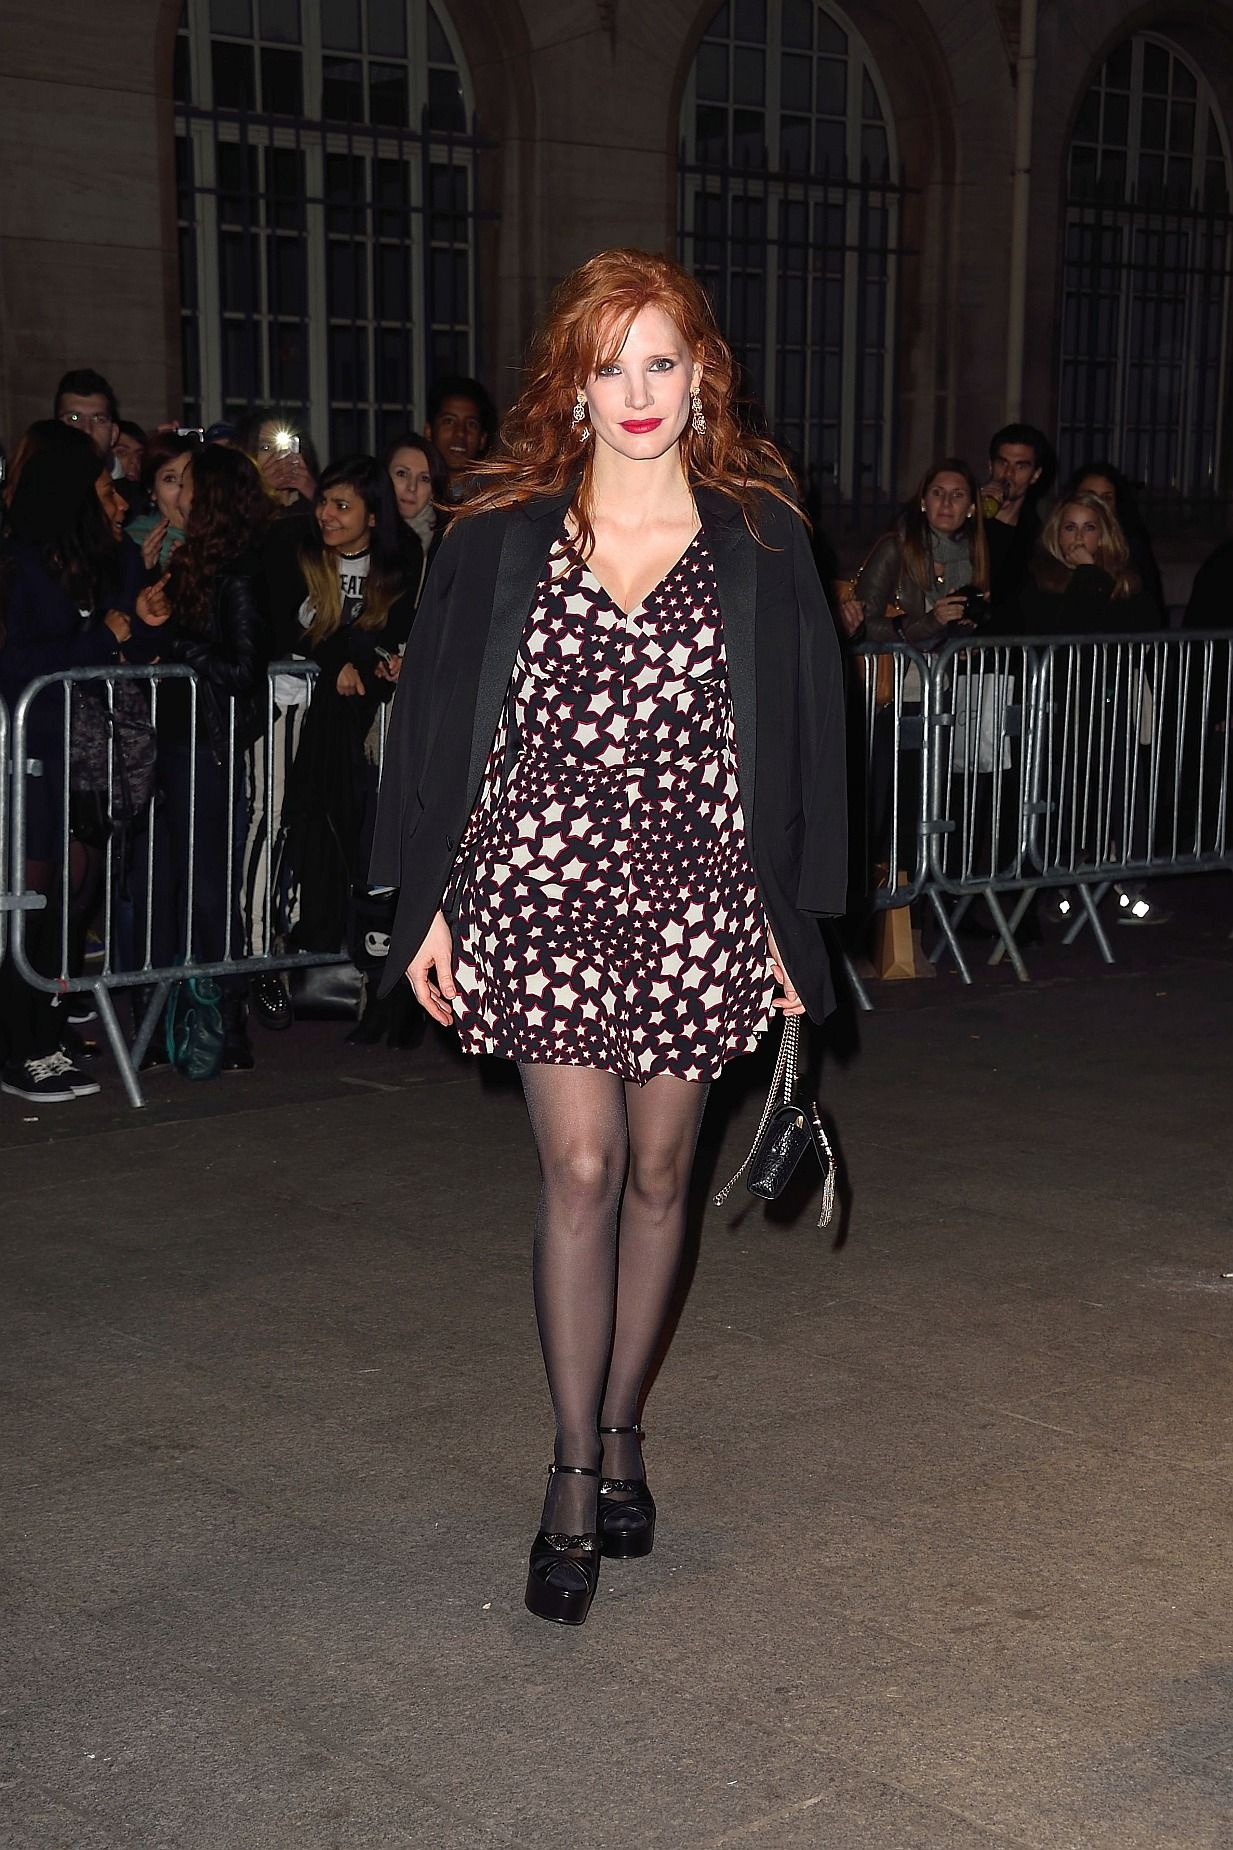 Jessica Chastain in sheer tights Paris March 09, 2015 ...